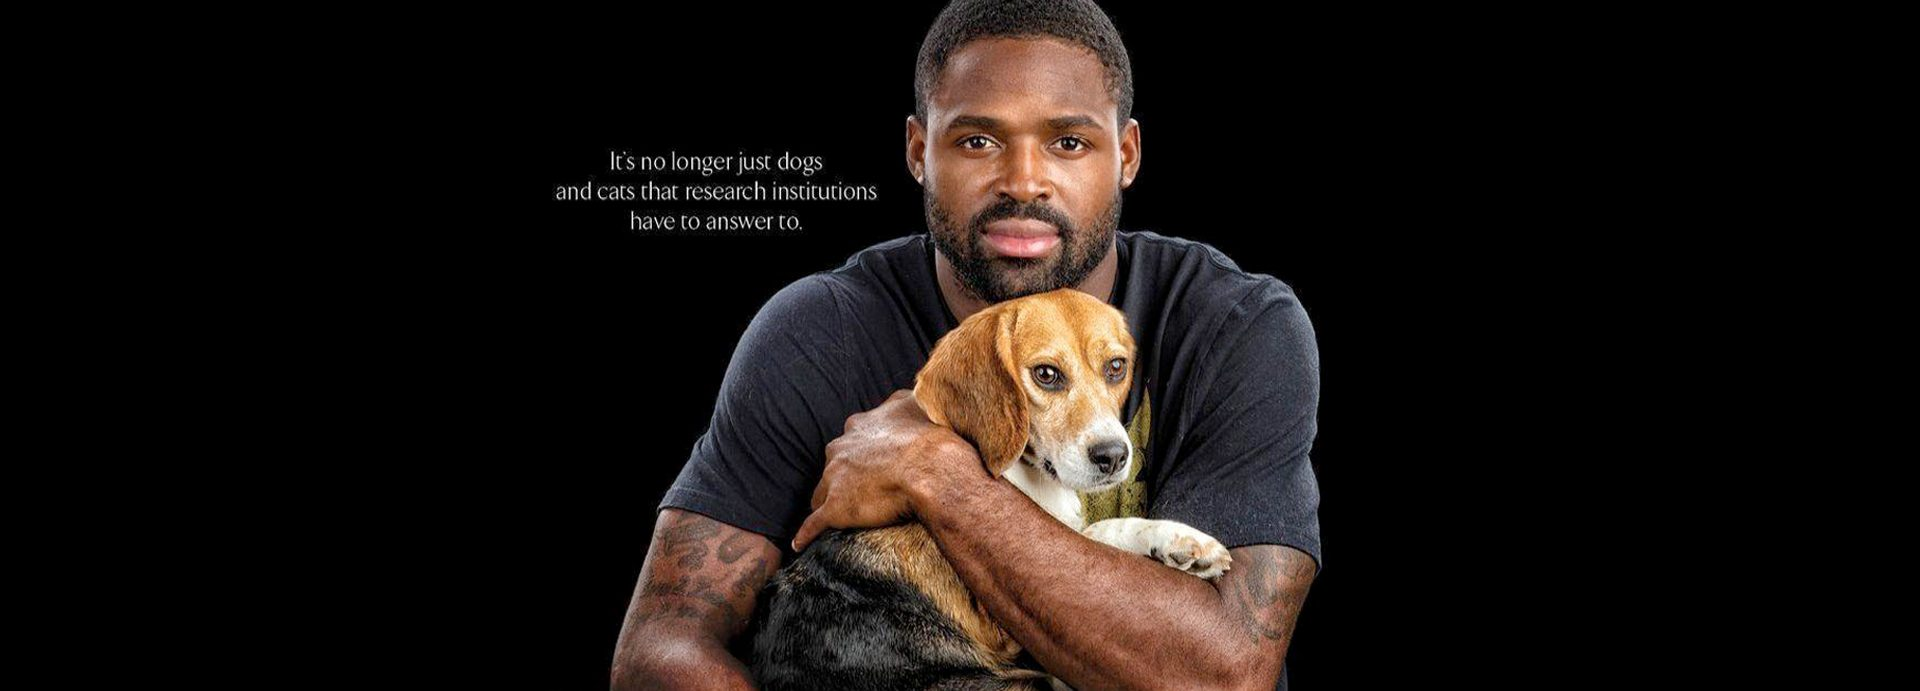 Eagles and beagles: Super Bowl champ Torrey Smith featured in billboard in support of 'Beagle Bill'